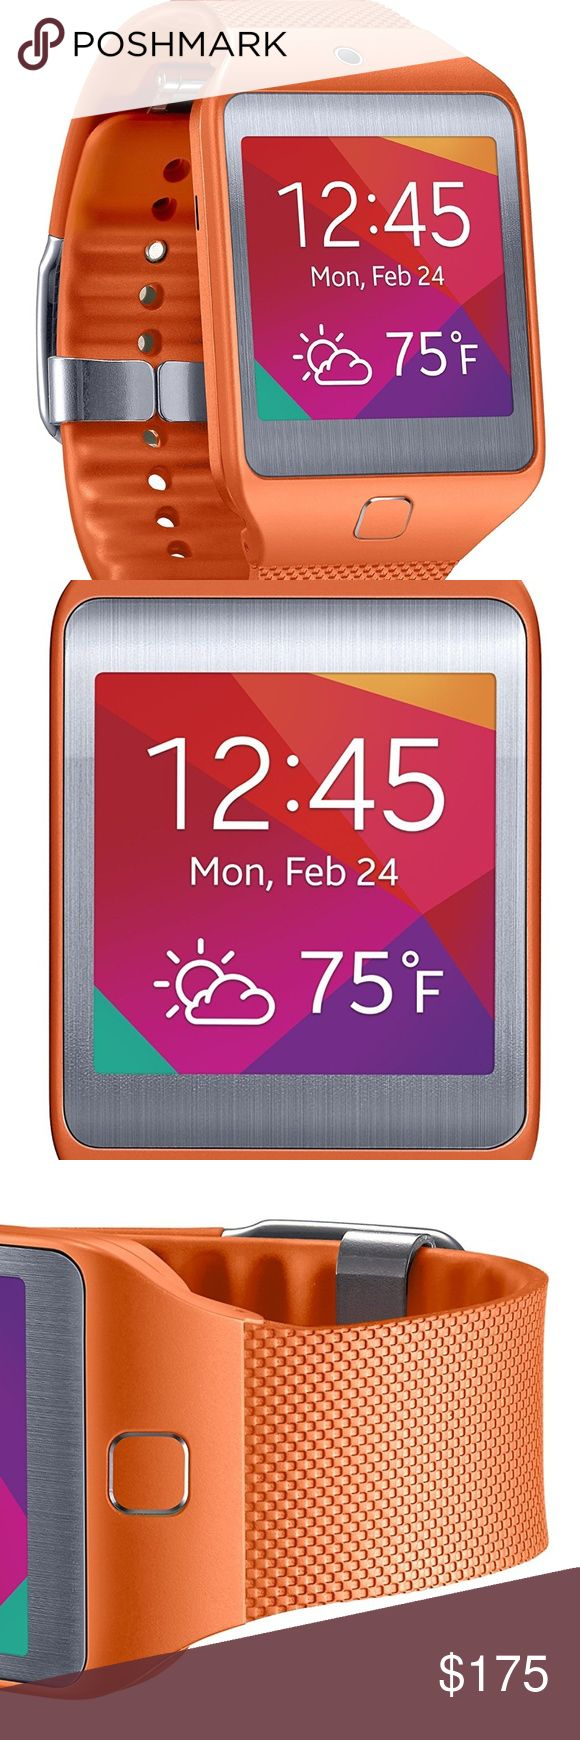 Brand New Samsung Gear 2 New Smart Watch Unisex Brand New Samsung Gear 2 Neo Smartwatch (Orange.  This device can make and receive calls, monitor your heart rate, and create a personalized fitness motivator.  Plus you can download hundreds of additional apps! Samsung Accessories Watches